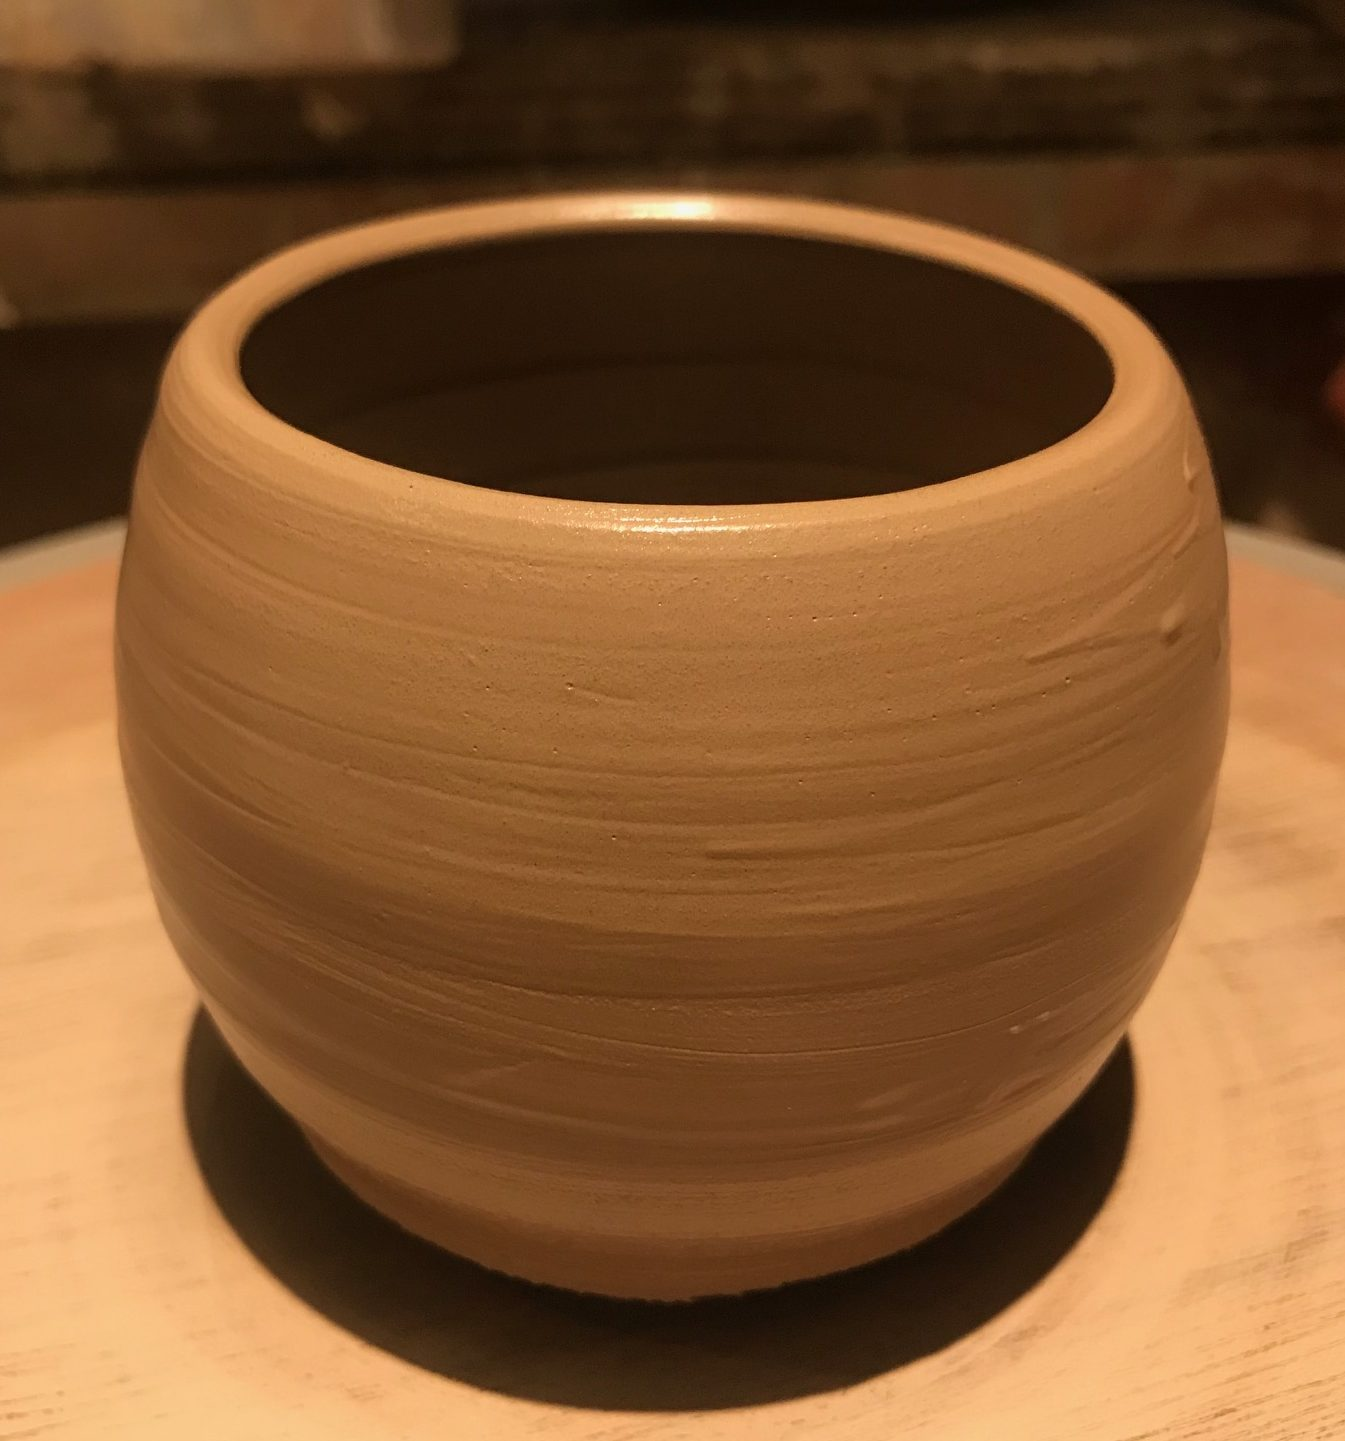 Read more about the article Day 47: 100 Pots in 100 Days